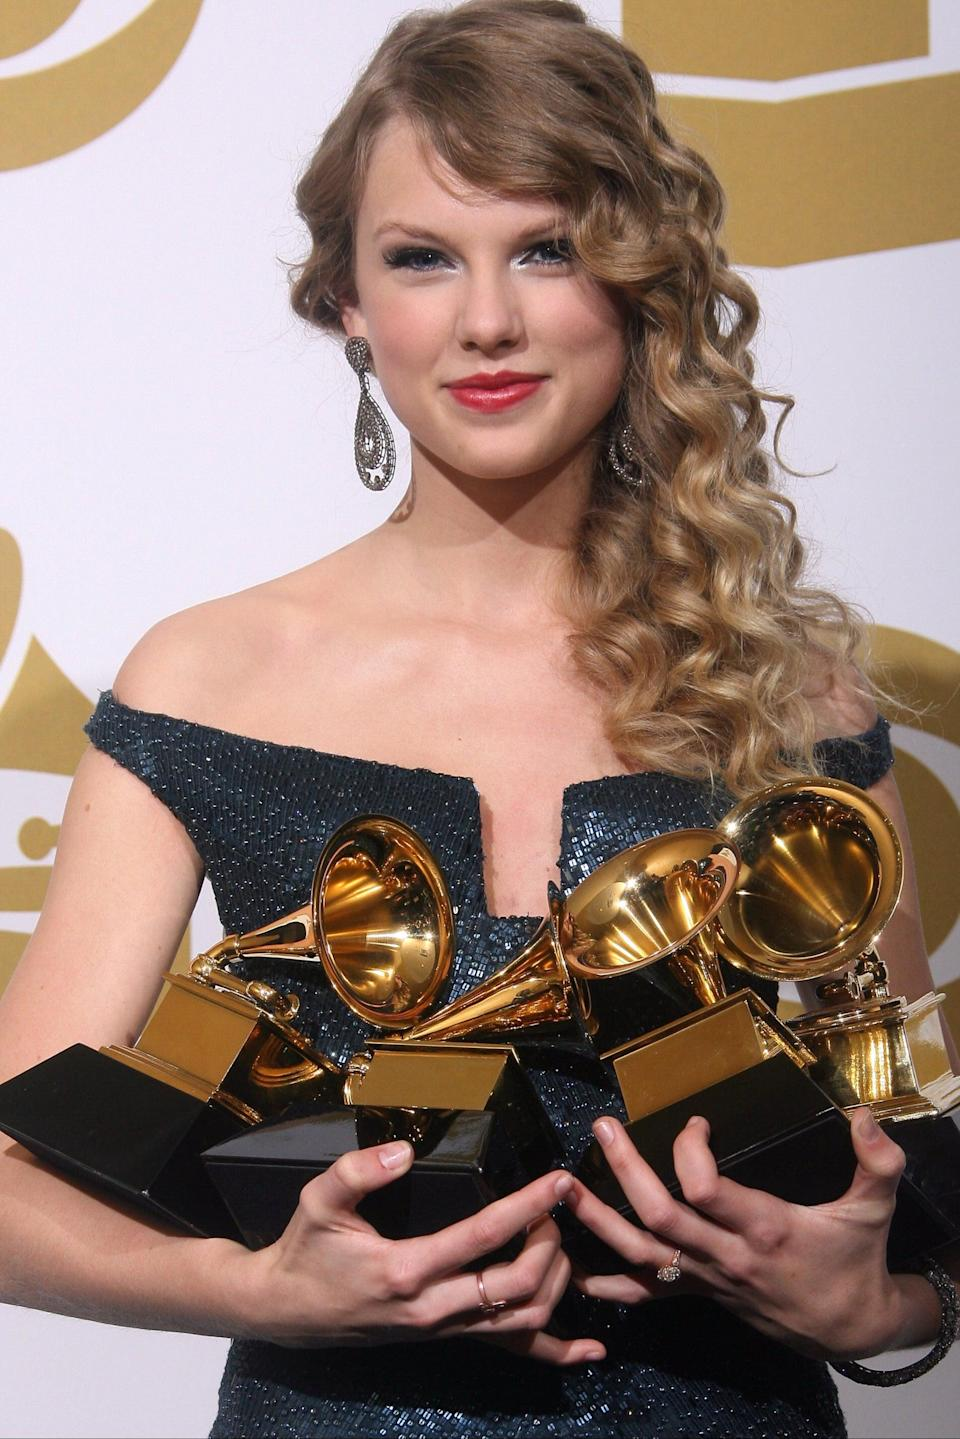 Swift has the clout to change the music industryAFP/Getty Images